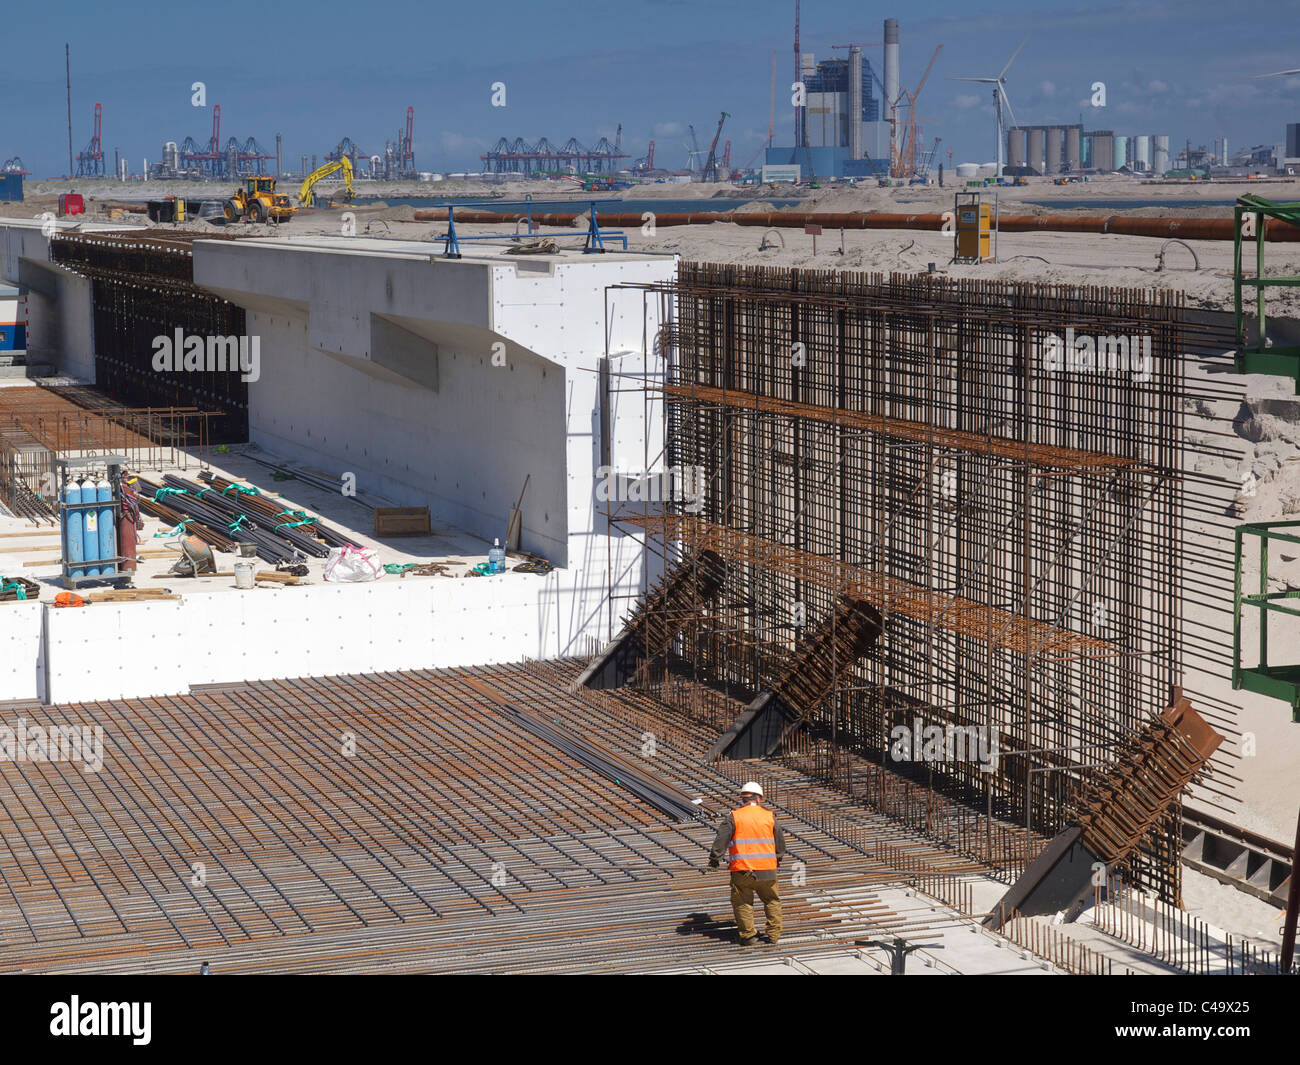 Construction site of the new deep sea port expansion quays at Maasvlakte 2 Rotterdam, the Netherlands - Stock Image